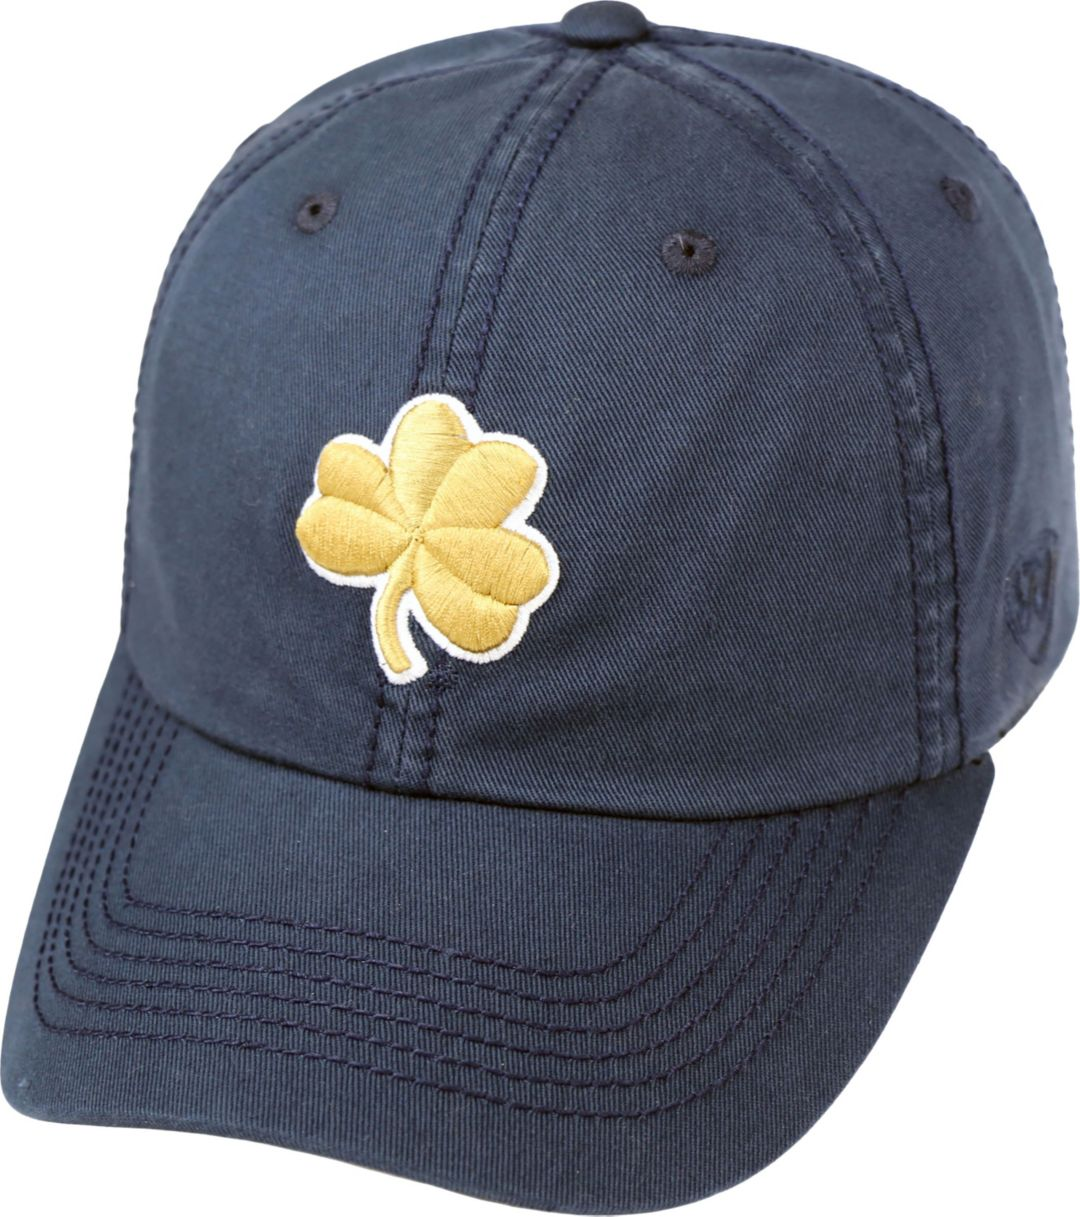 brand new f9689 75ad3 Top of the World Men s Notre Dame Fighting Irish Blue Crew Adjustable Hat.  noImageFound. Previous